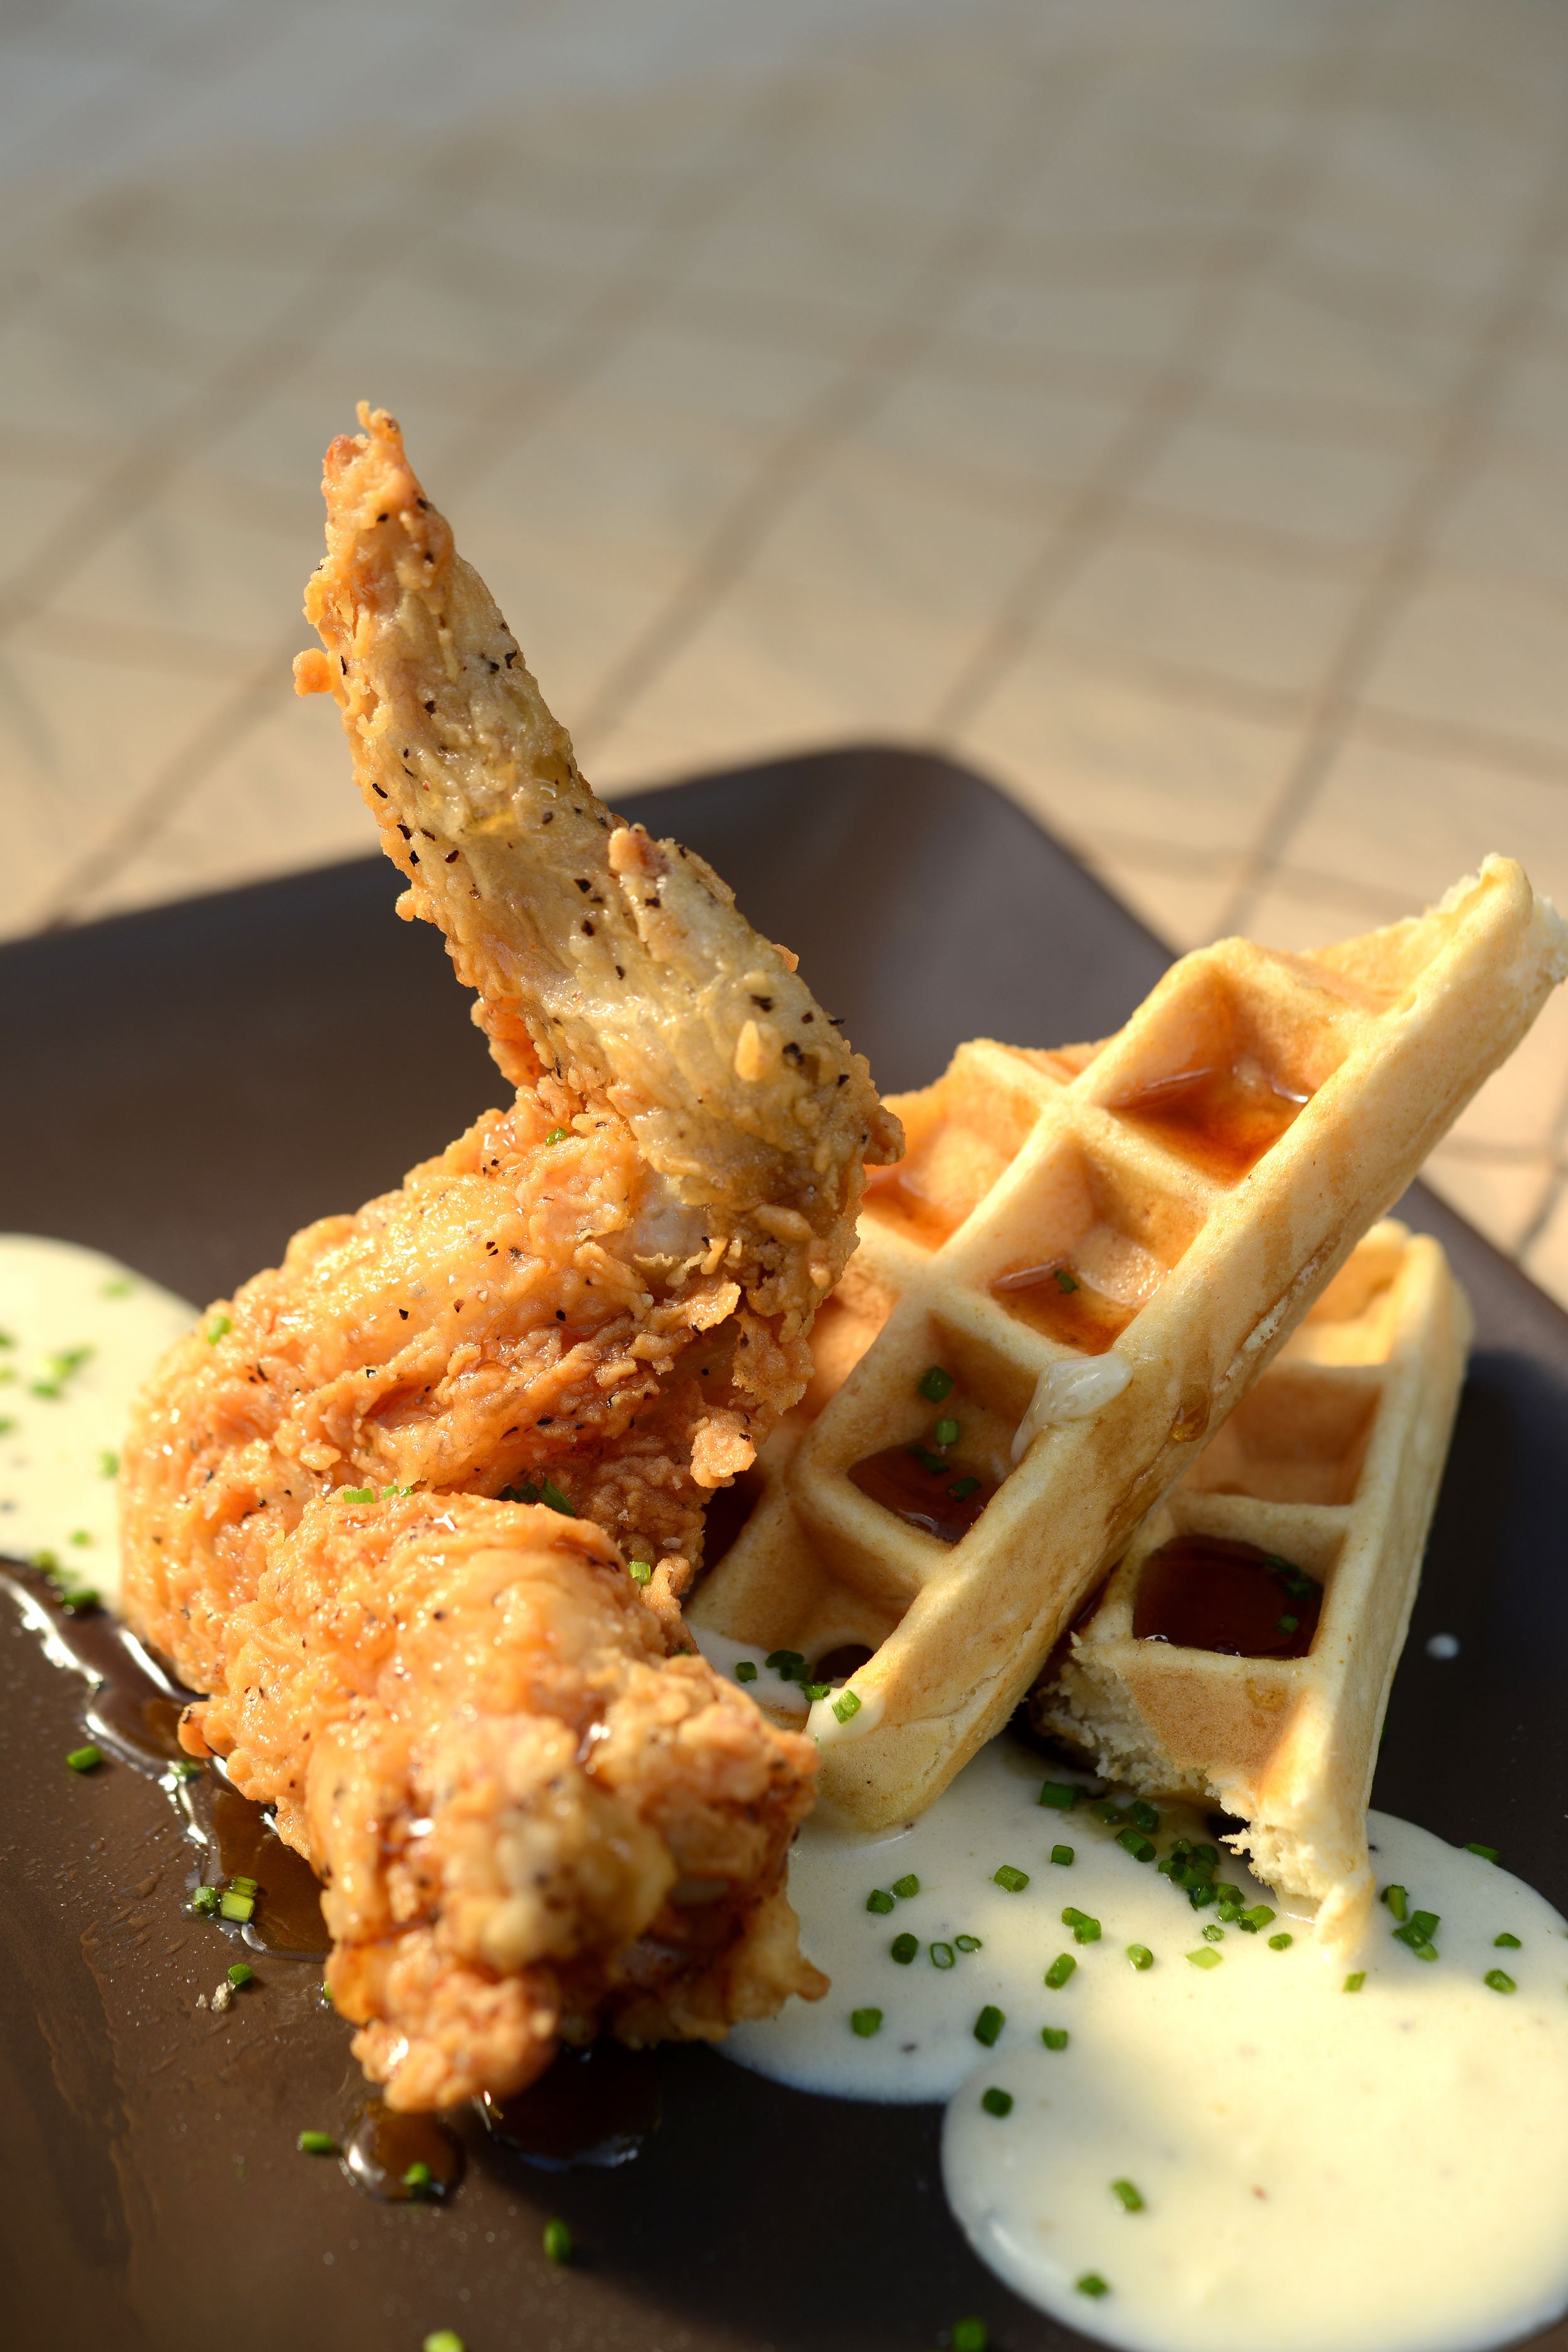 Station - Chicken and Waffles.jpg